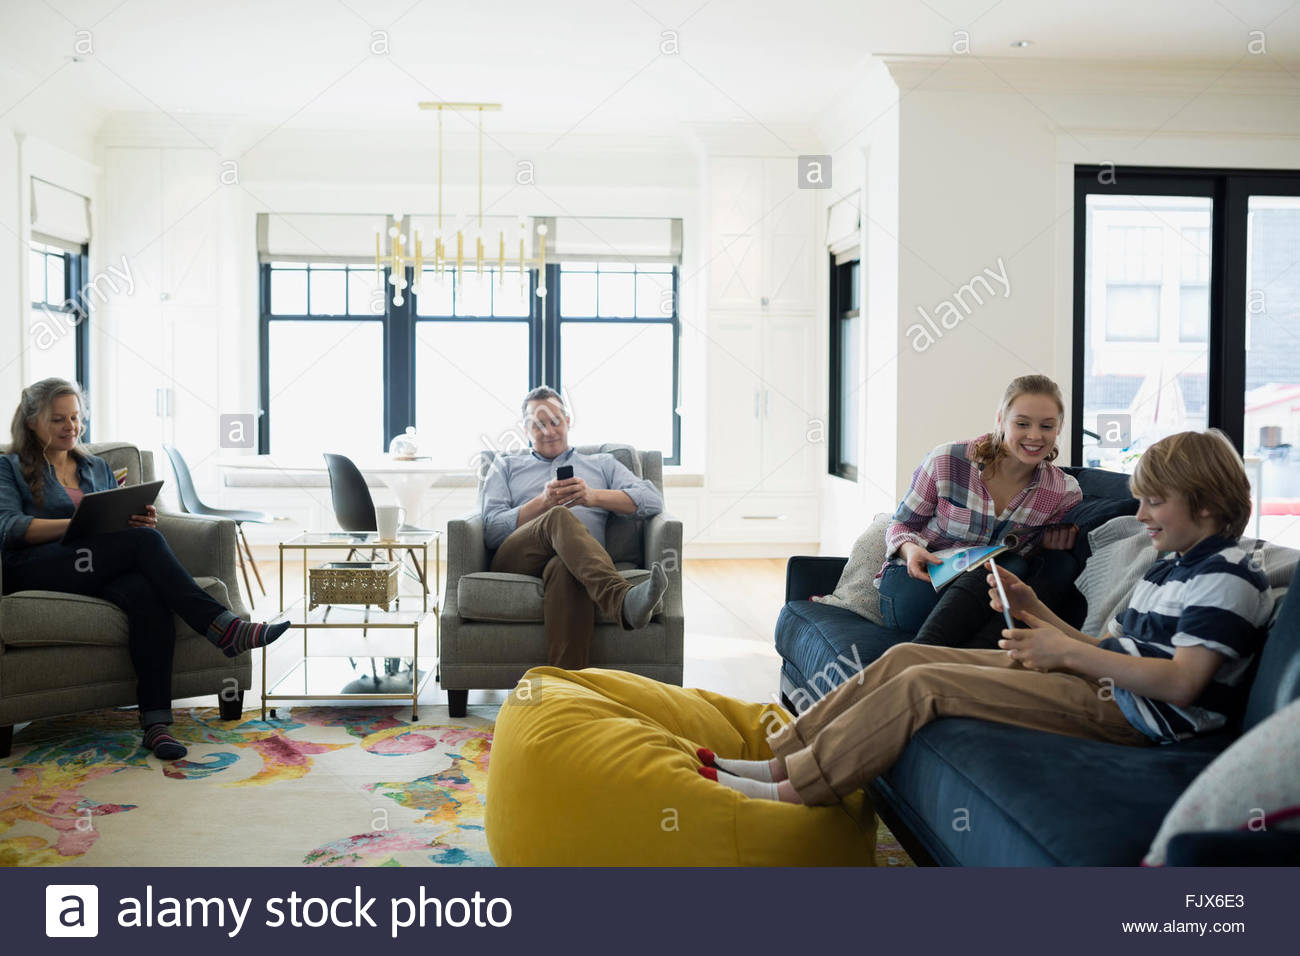 Family relaxing using technology in living room Stock Photo